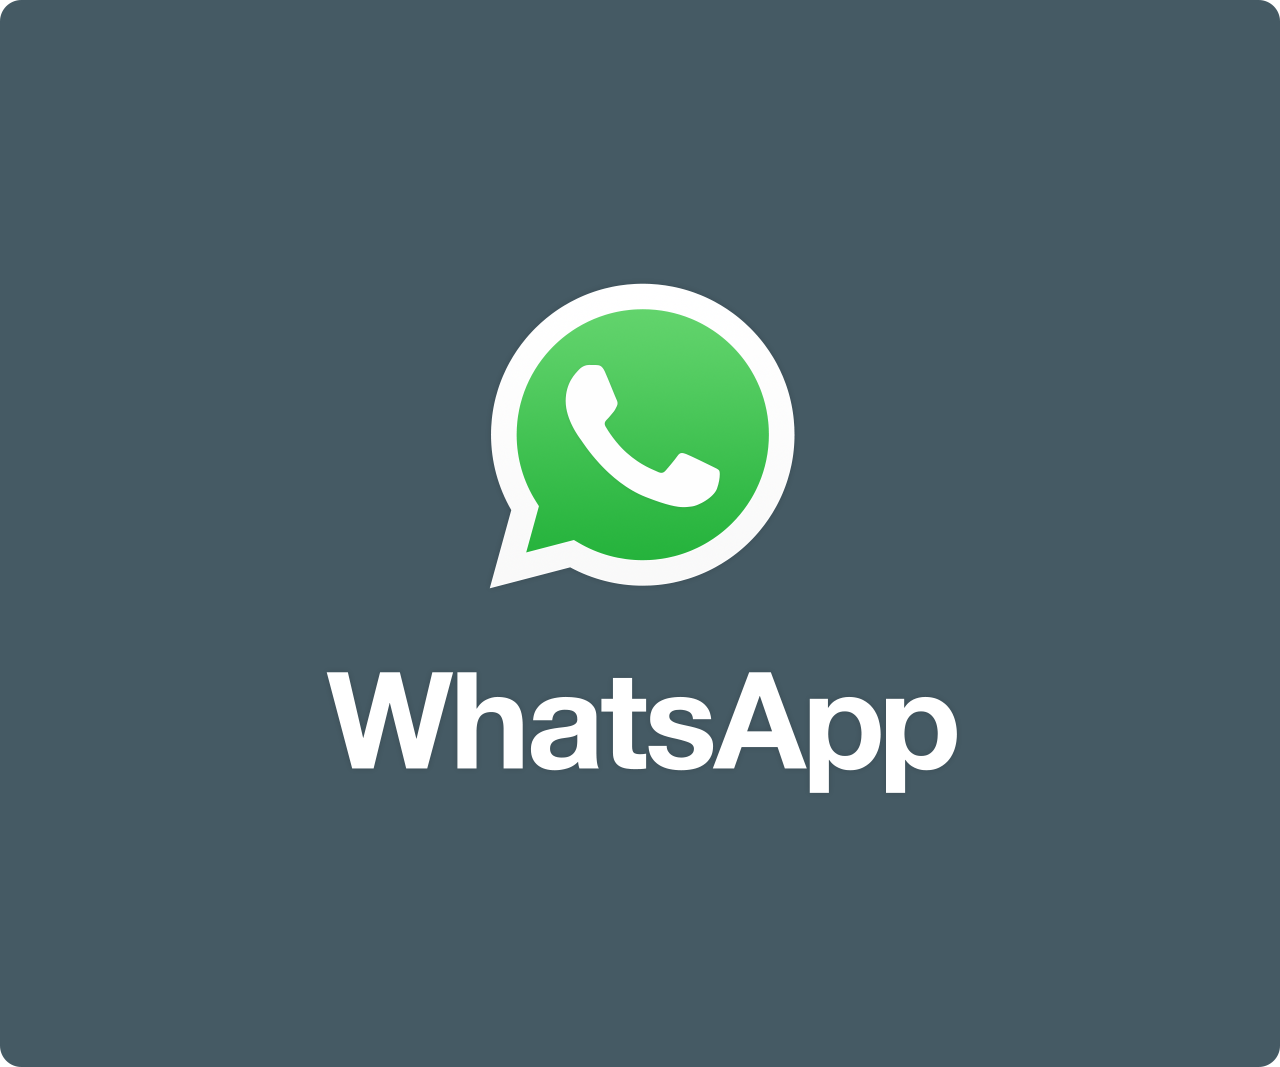 WhatsApp to allow group admins to silence, reject messages from members